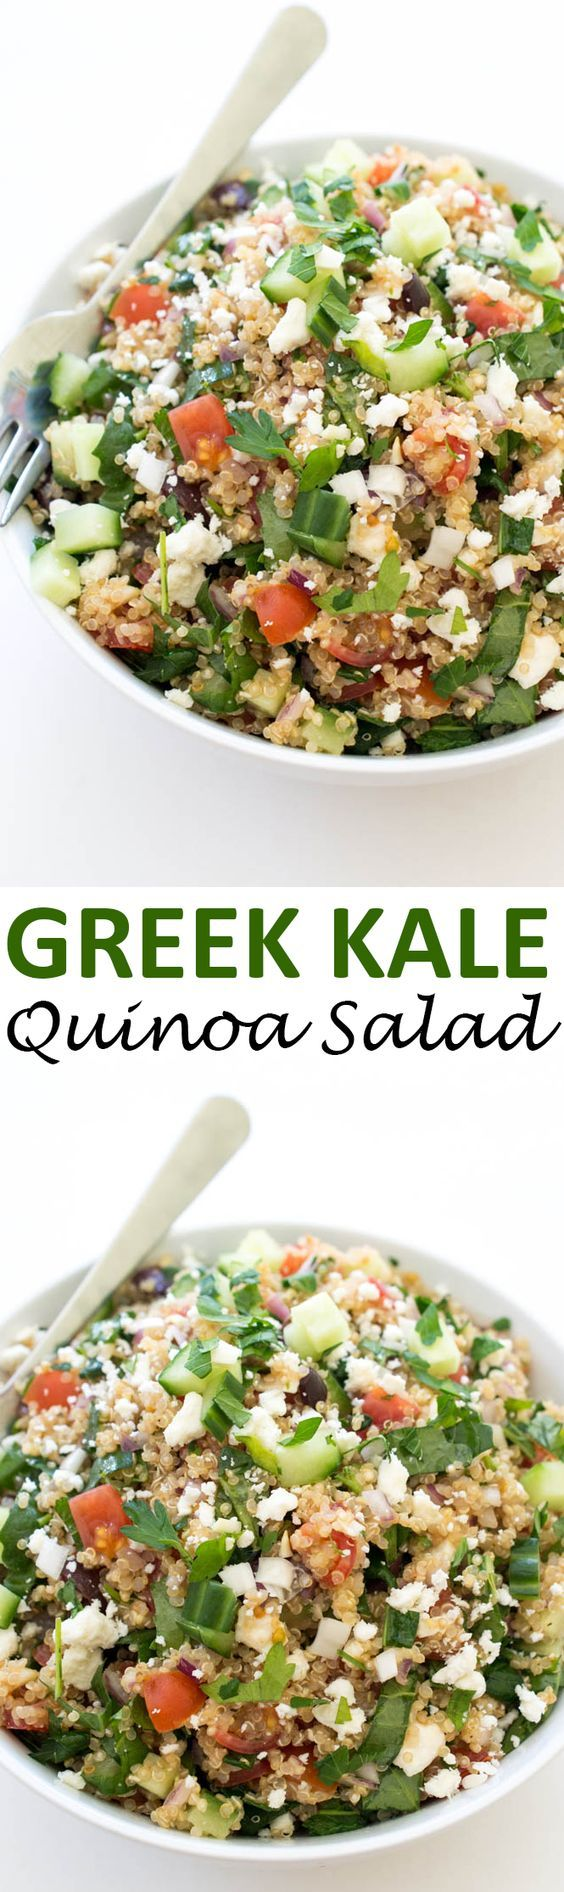 30 Minute Greek Kale Quinoa Salad ~ loaded with tons of vegetables and tossed with lemon and olive oil!   chefsavvy.com